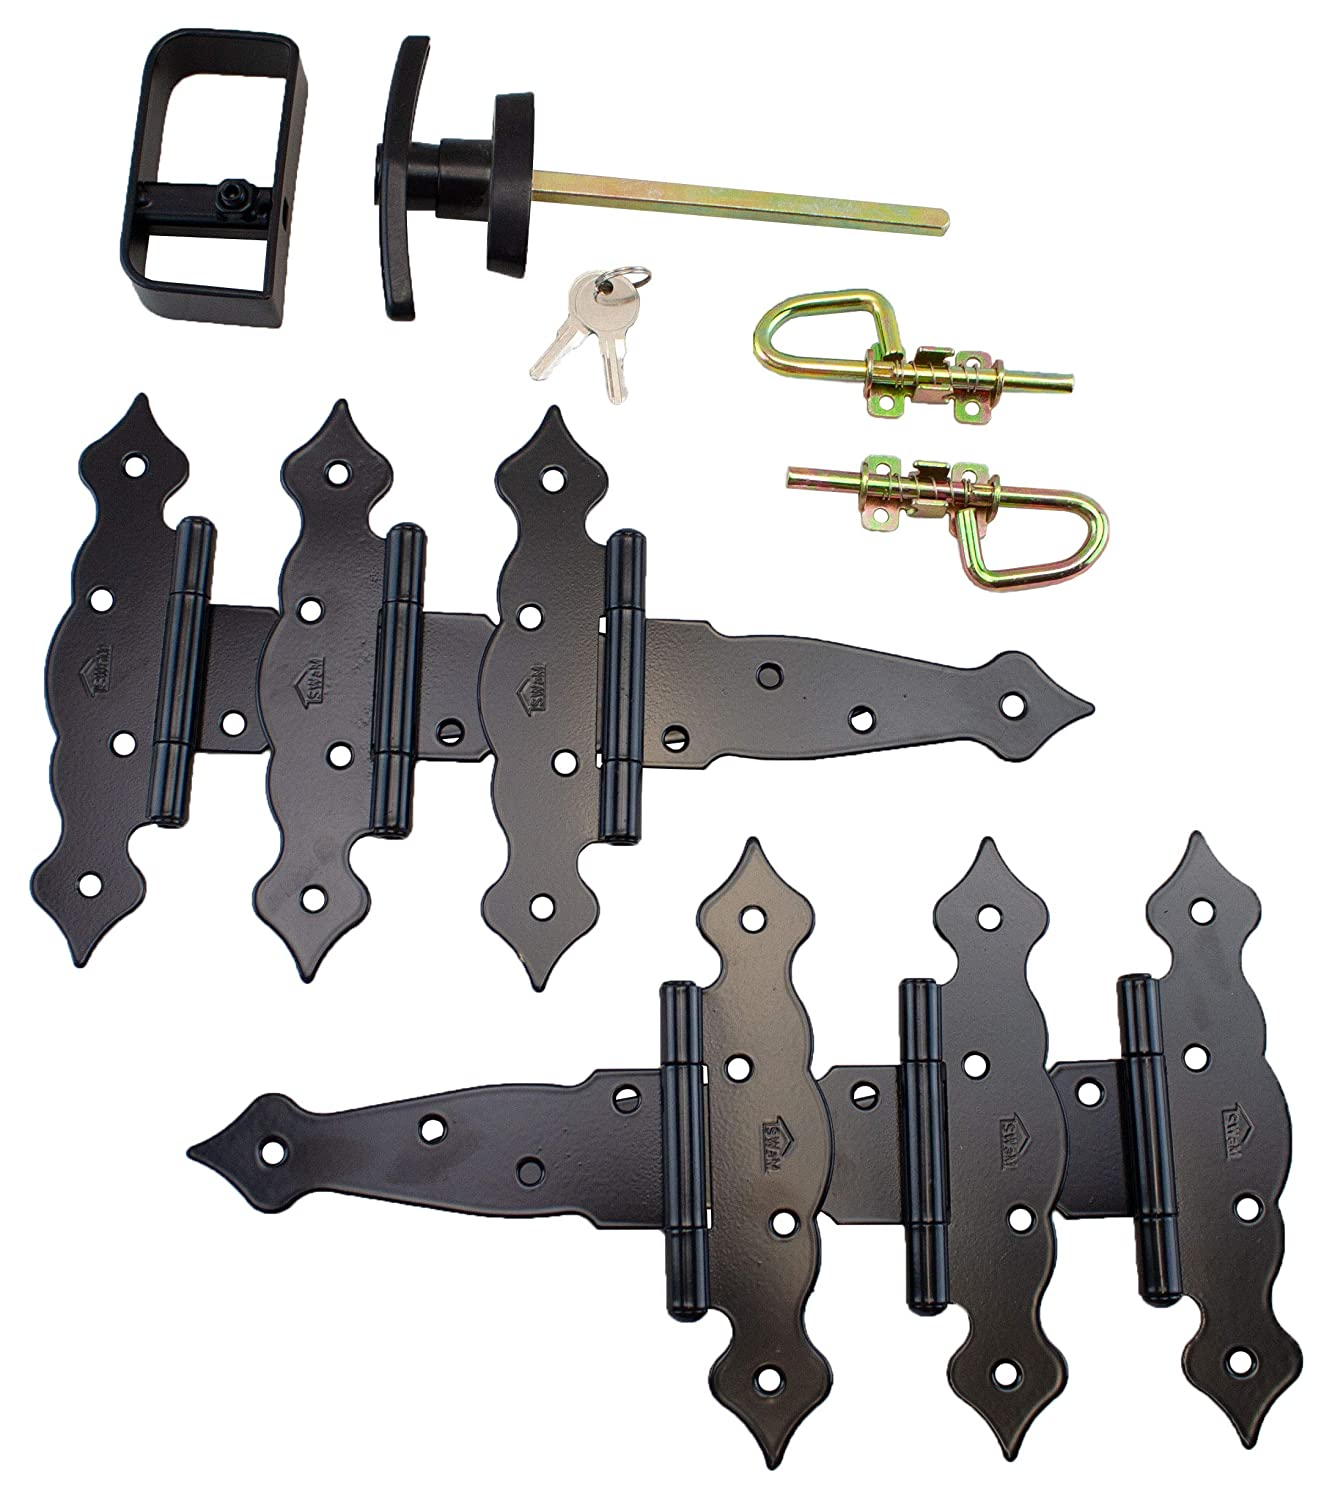 T Hinges 6 Fancy Decorative Hinges Loop Barrel Bolts Shed Door Hardware Kit T Handle